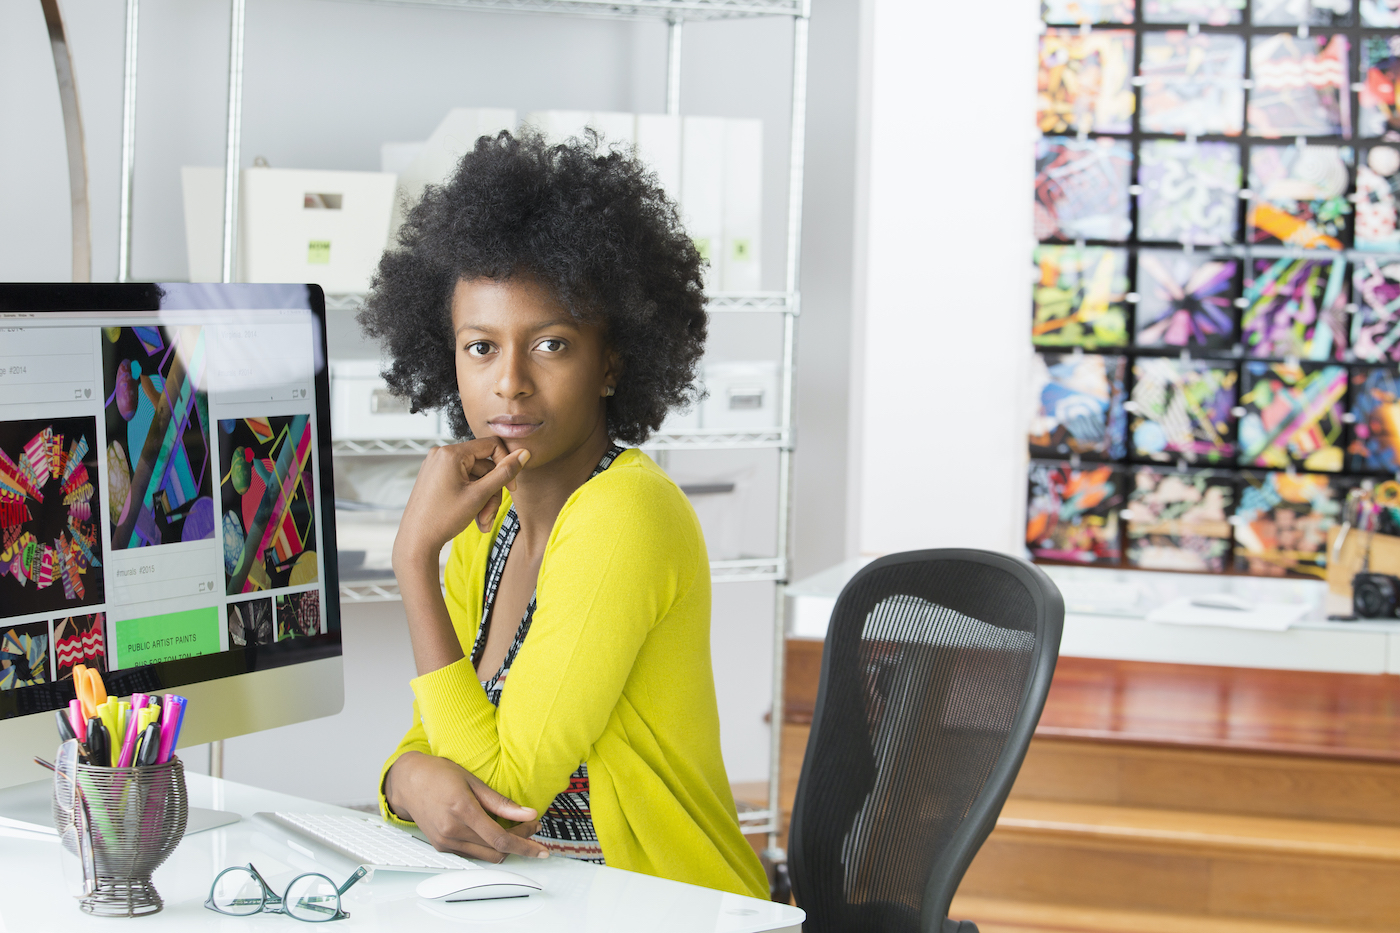 Thumbnail for How Black Women Are Addressing Racial Tensions at Work